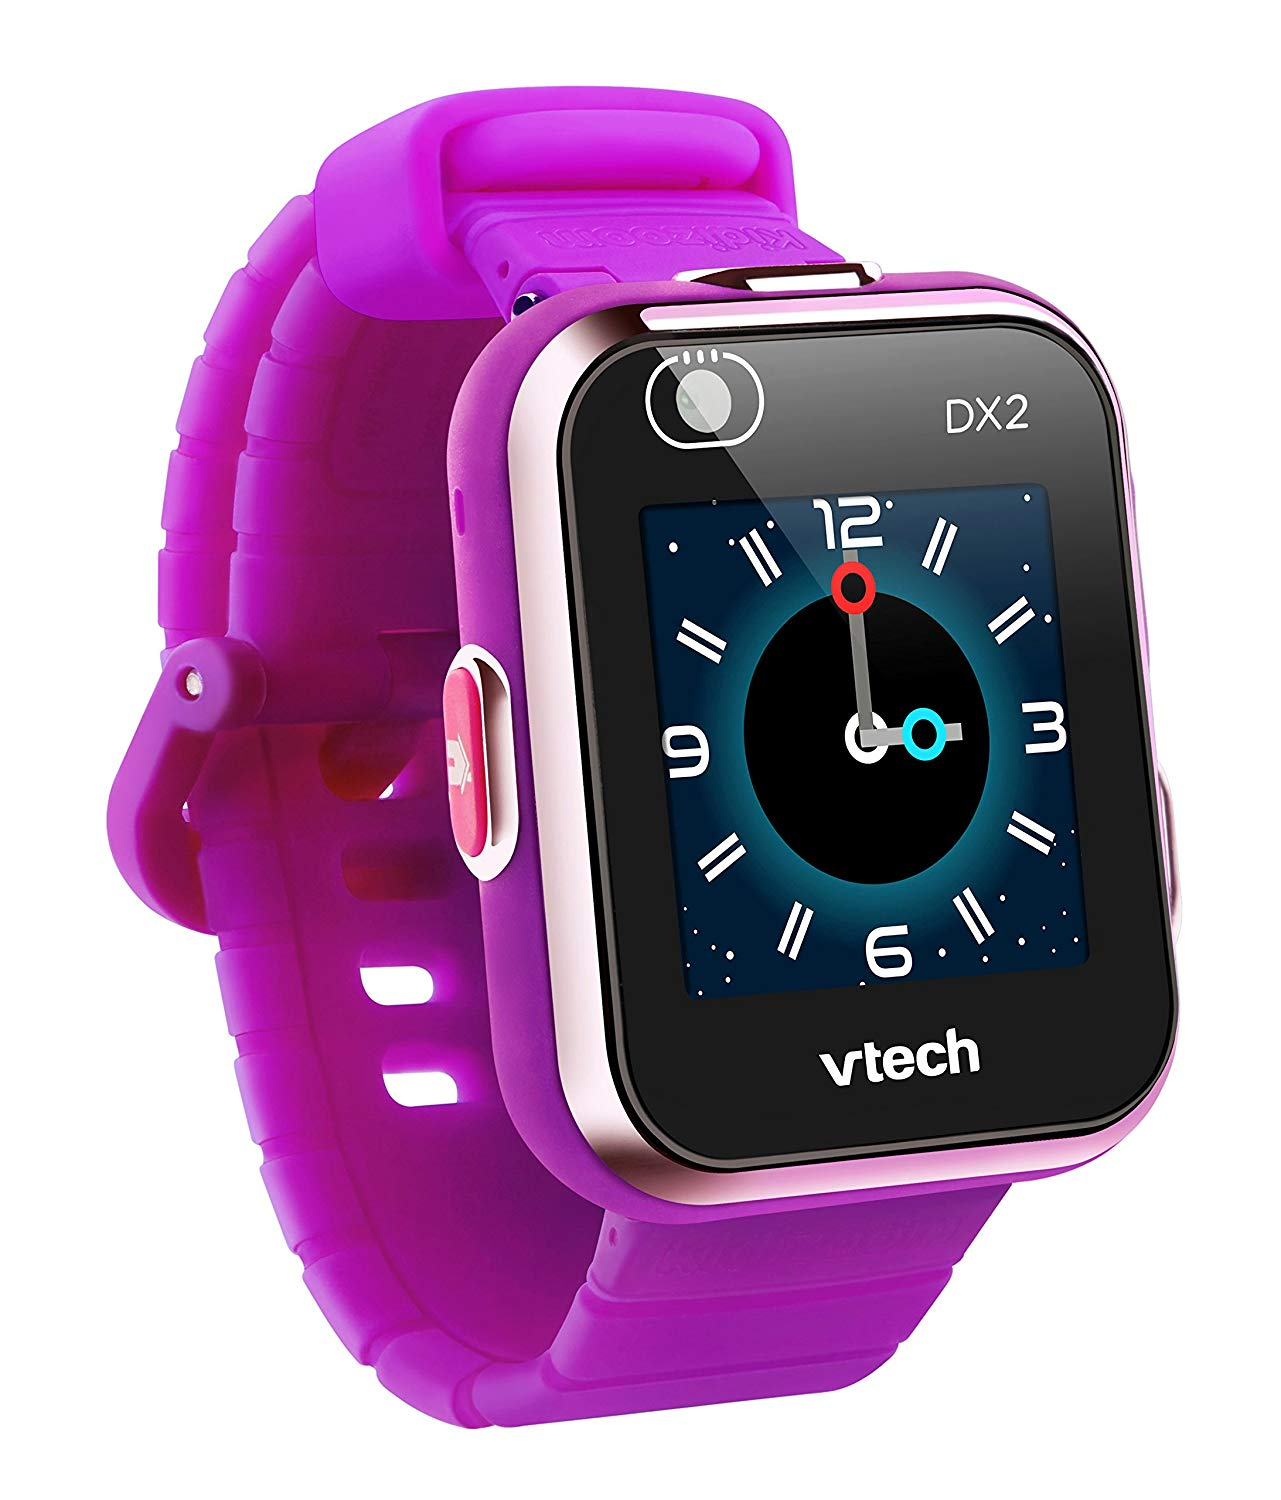 VTech Kidizoom DX2 Kids Smartwatch: